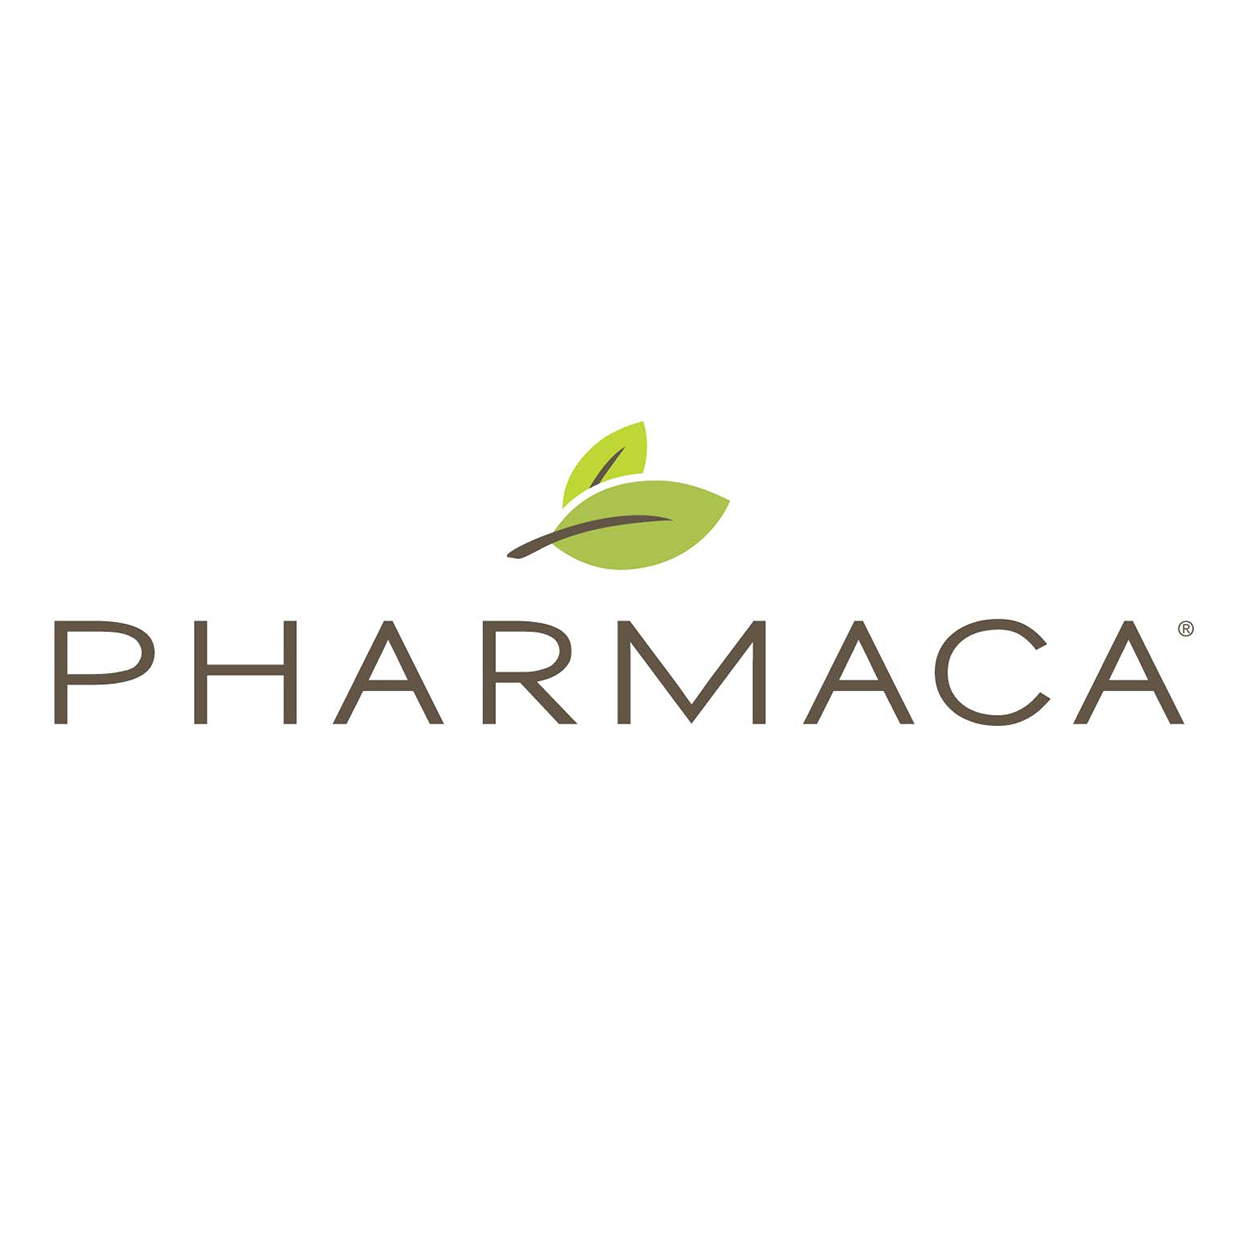 Andalou Naturals 1000 Roses Body Butter Velvet Soft 8oz. Zoom in on product.